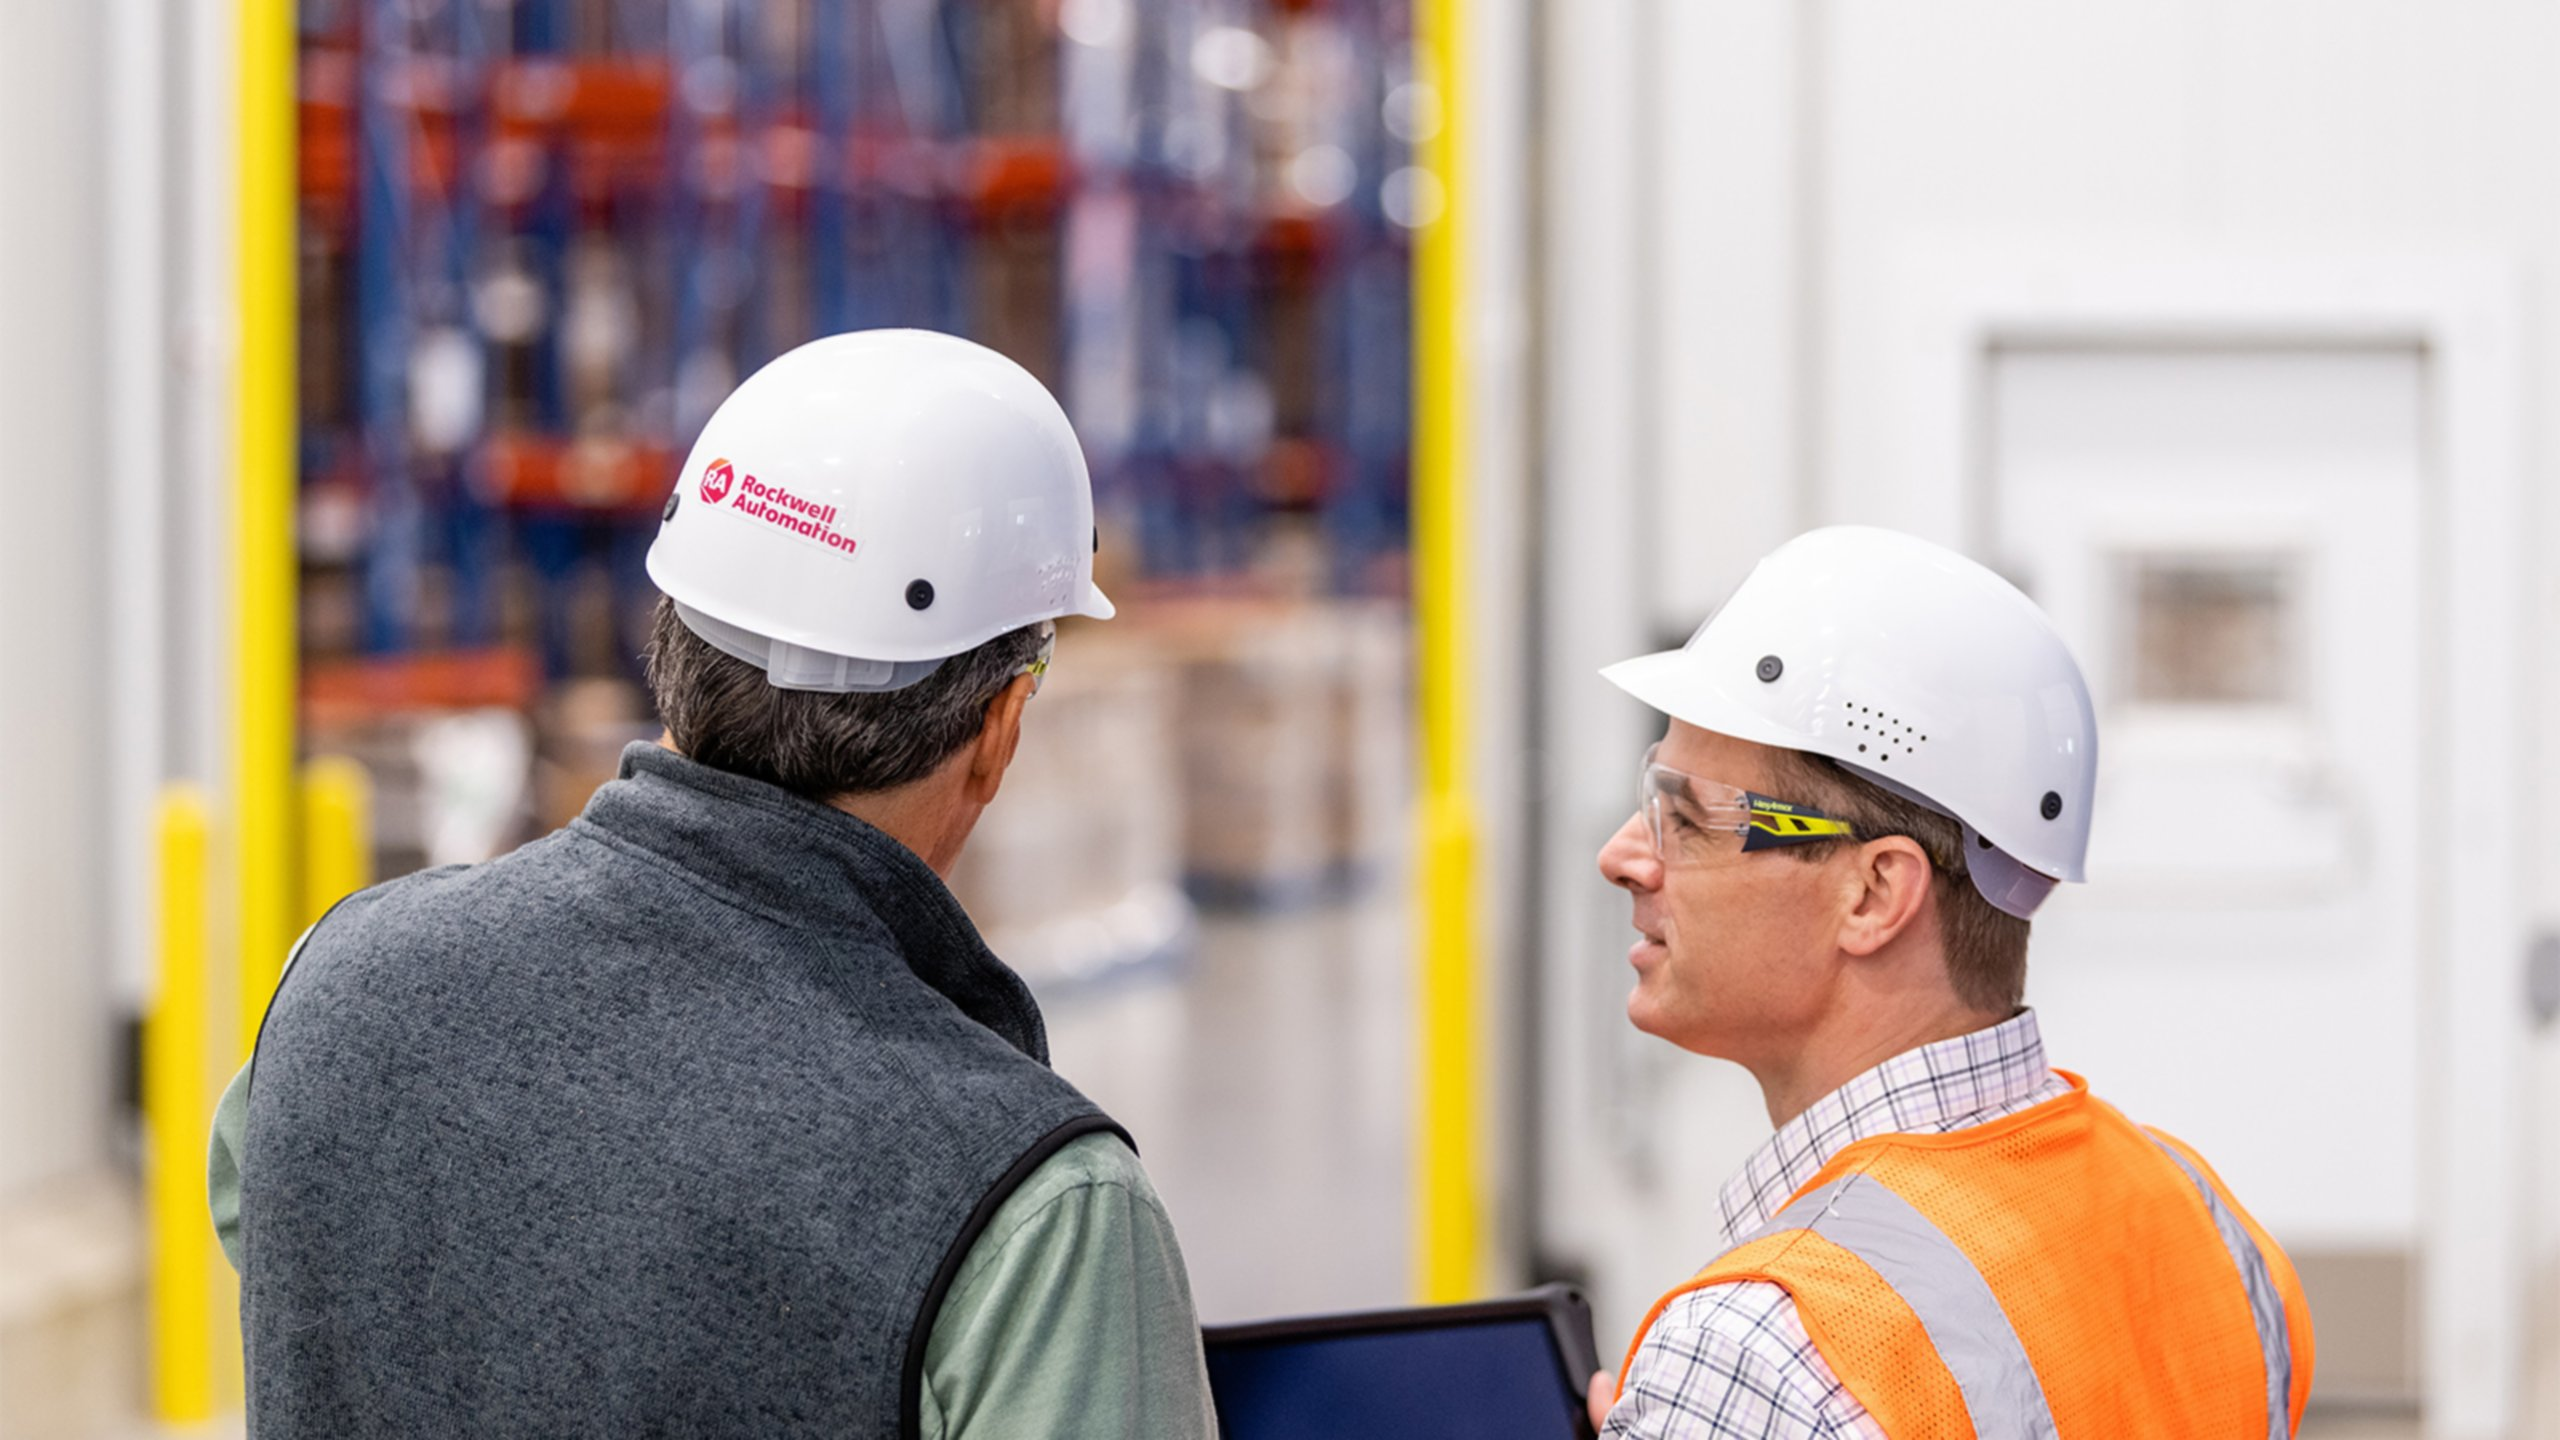 Rockwell Automation consultant in hard hat looks at tablet with male client in orange vest